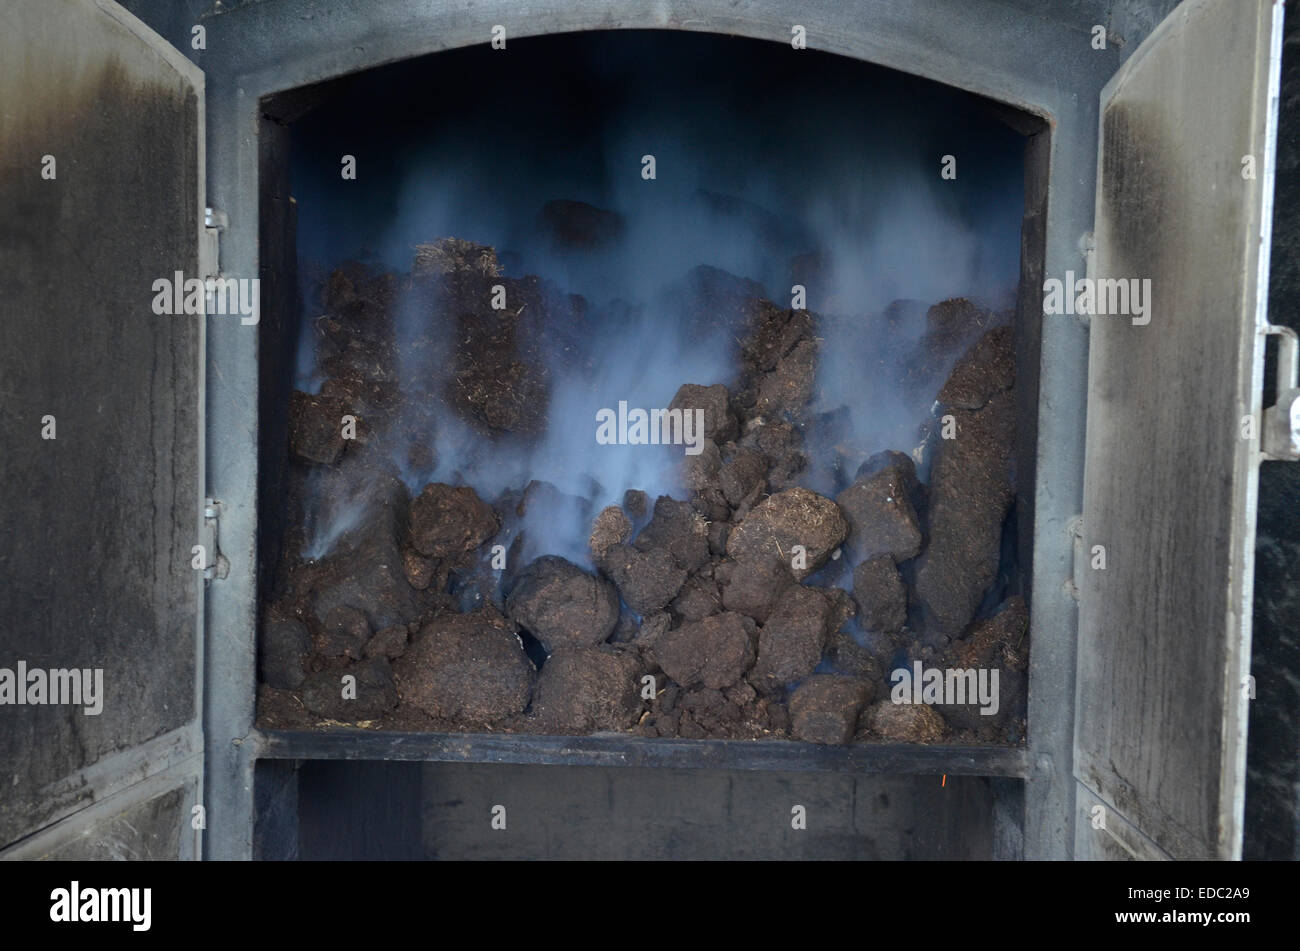 Peat burning at the Laphroaig Whisky Distillery on the island of Islay, Scotland - Stock Image